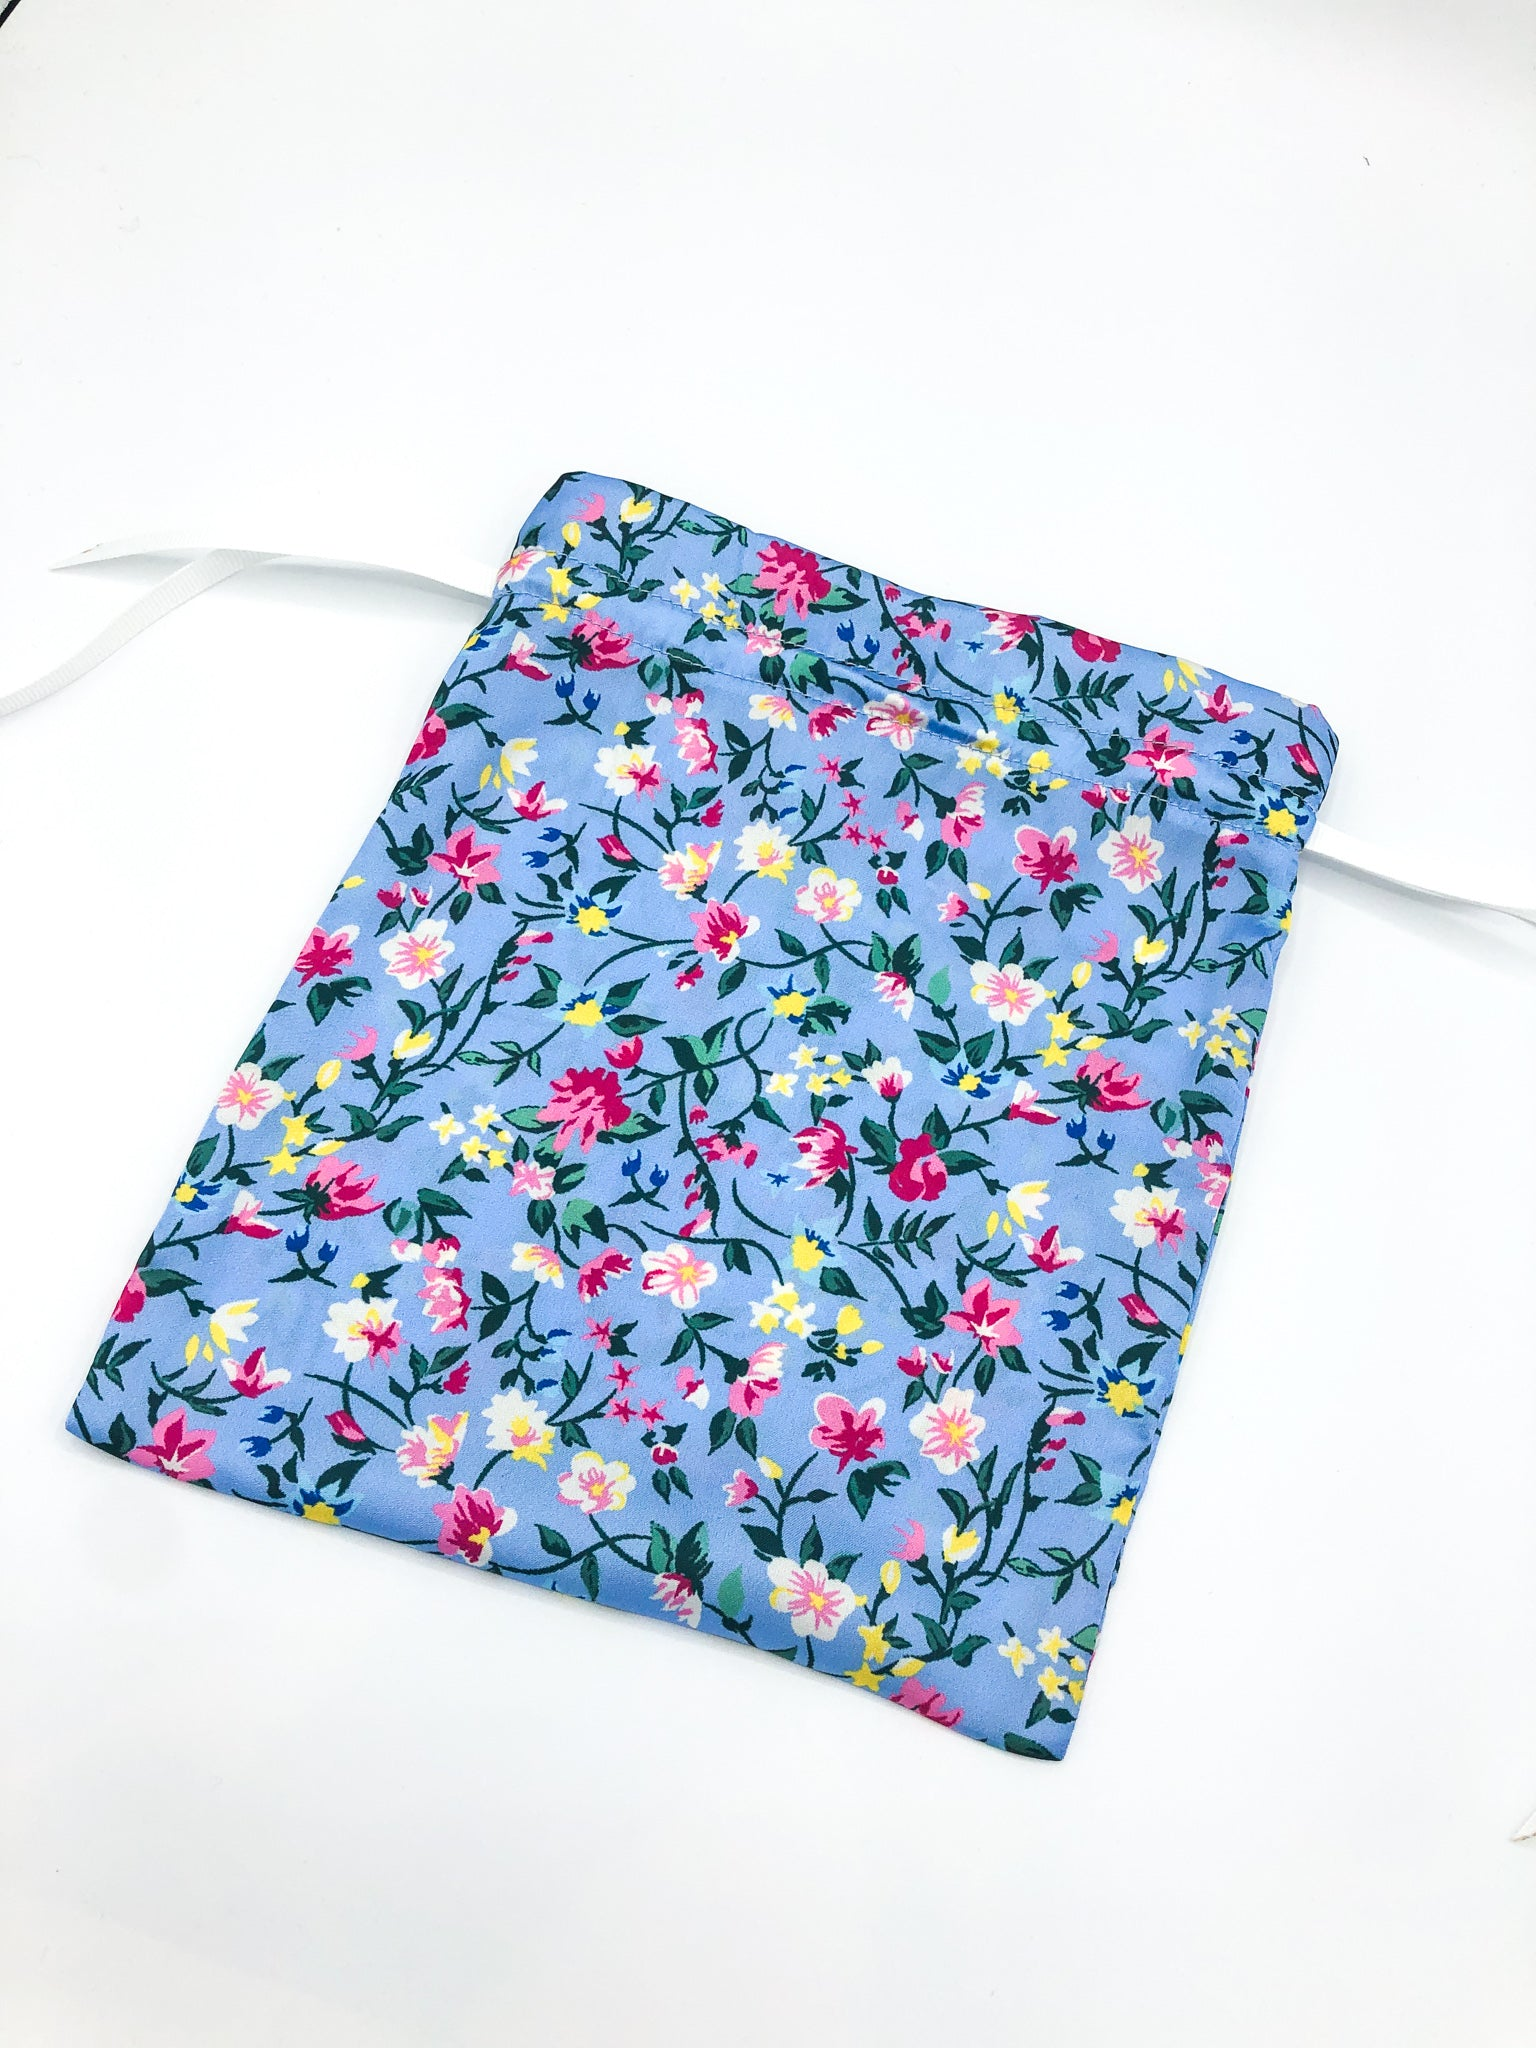 Klein Blue Floral Face Covering and Matching Bag